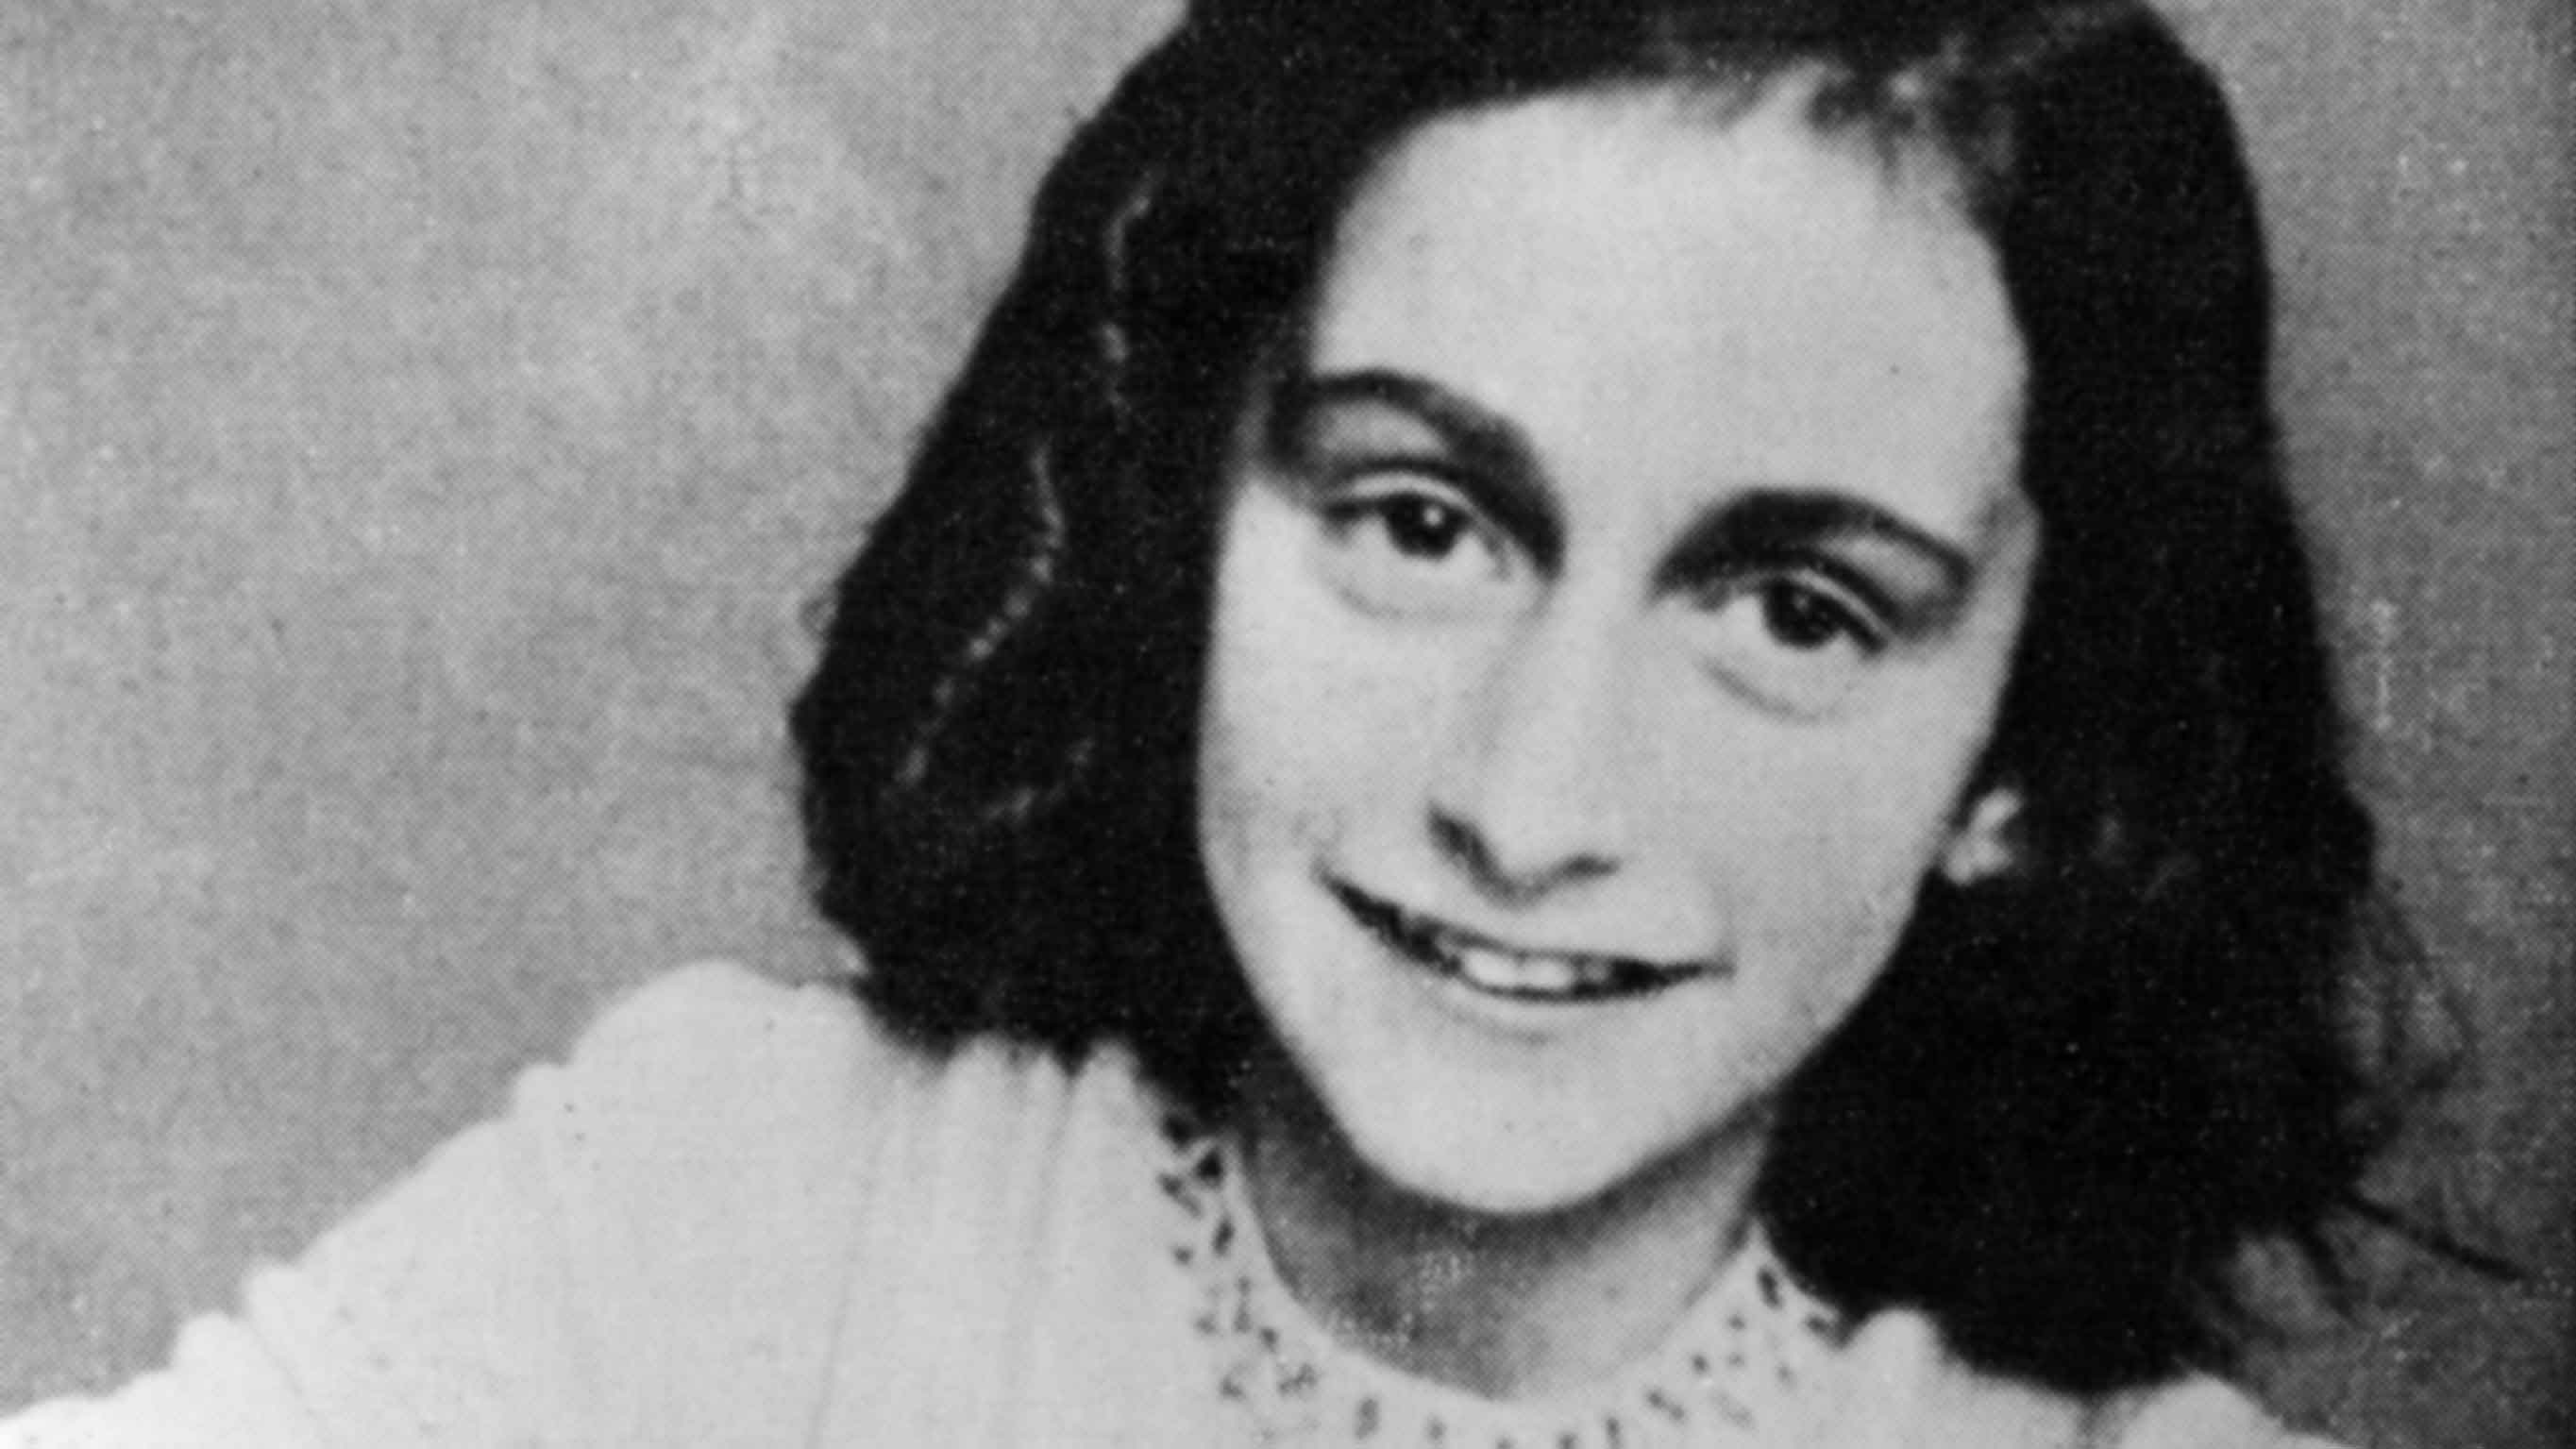 Did a Jewish Collaborator Betray Anne Frank to the Nazis?